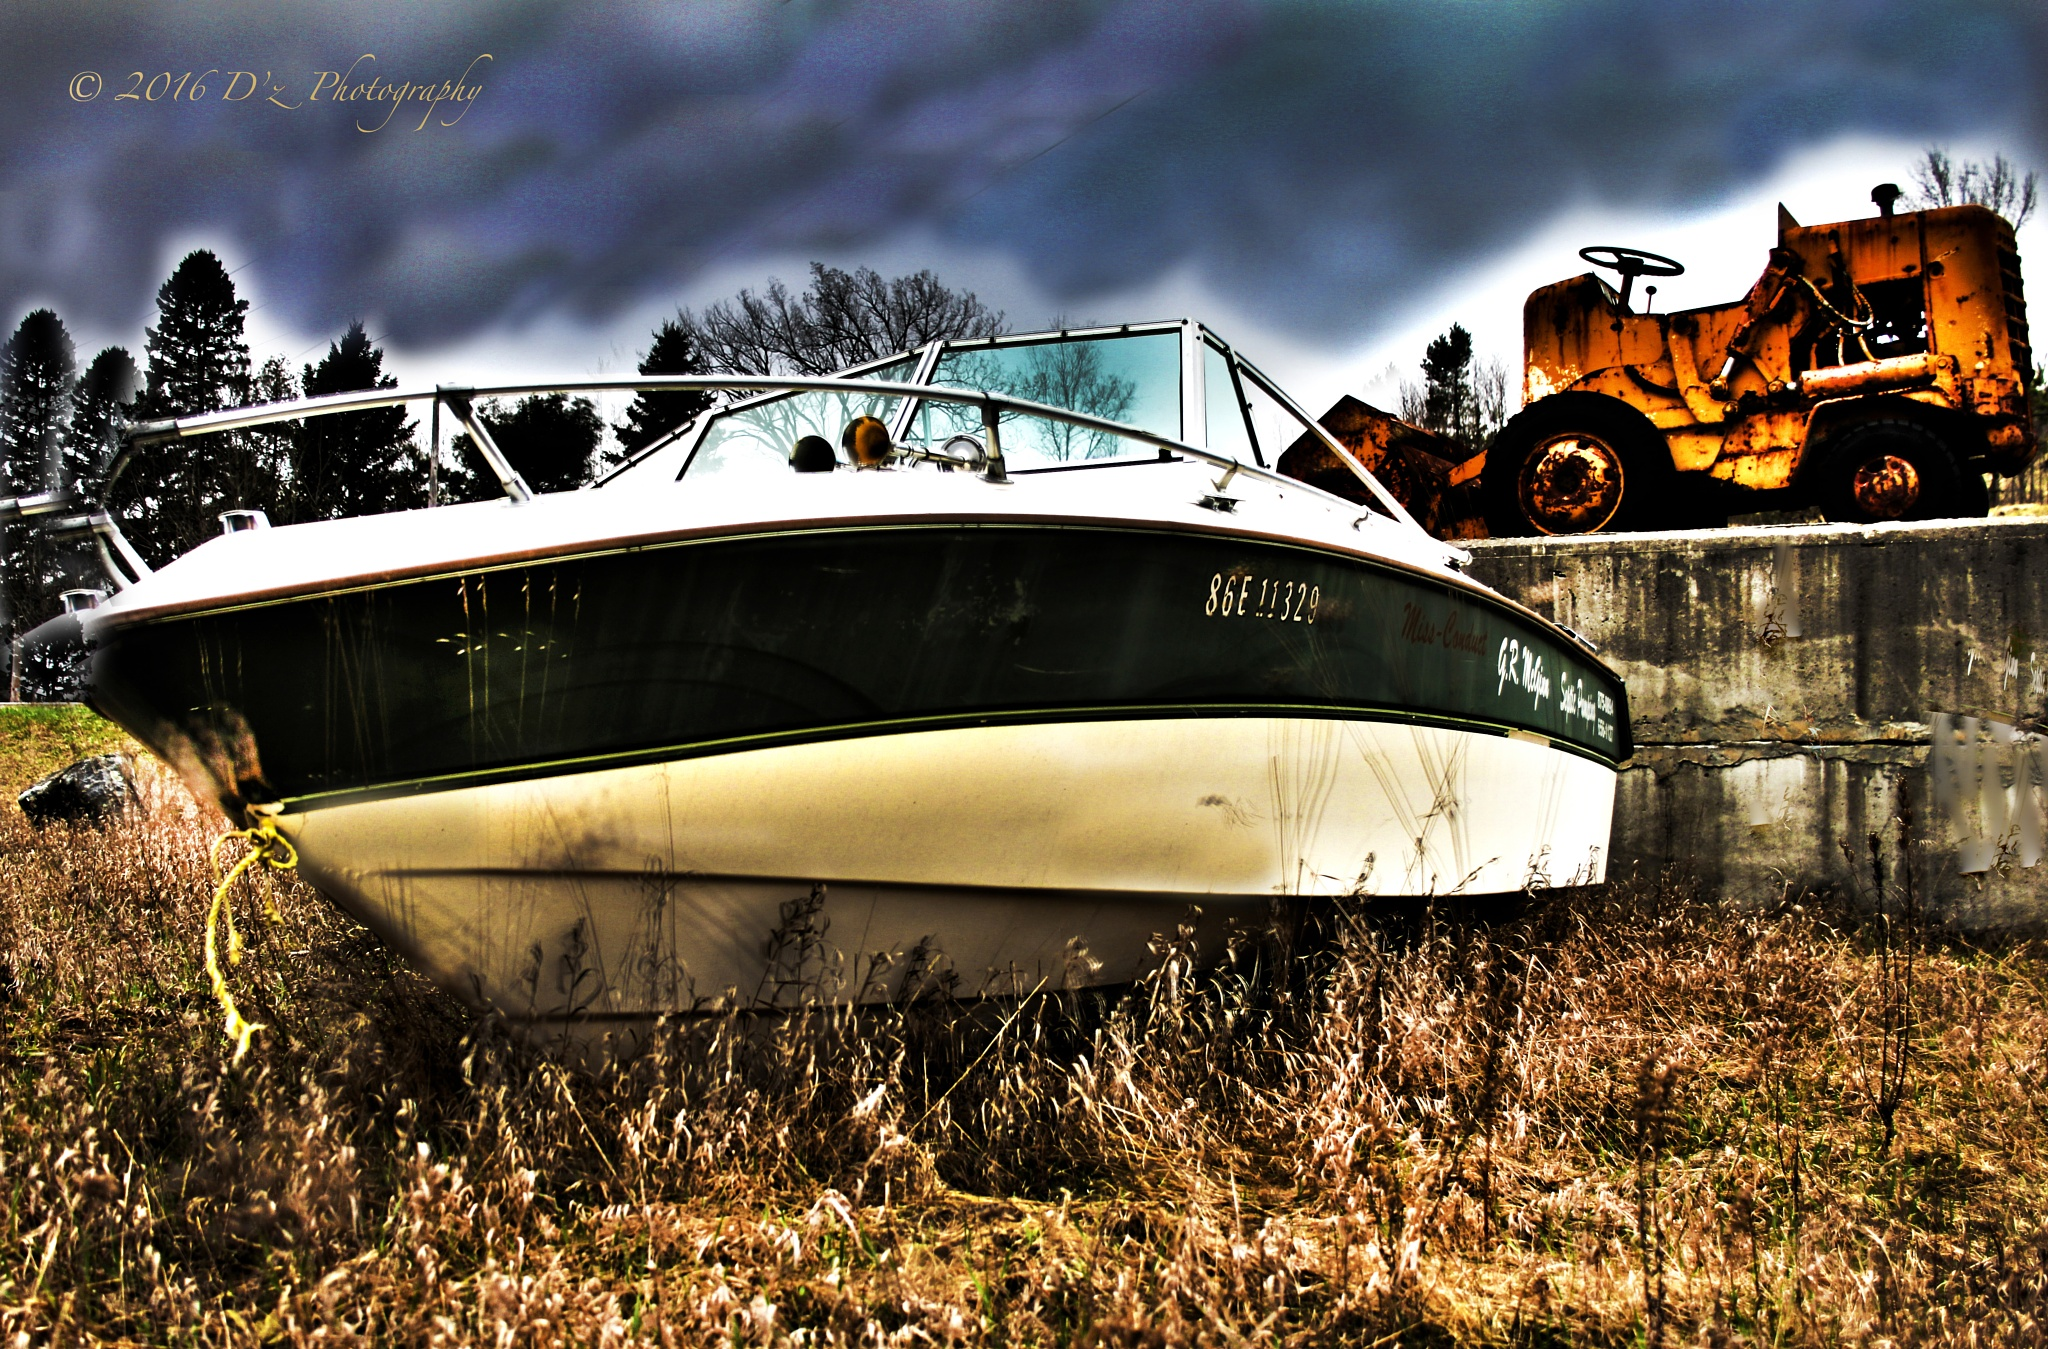 This is where the Boat Stops by Dz_Photography